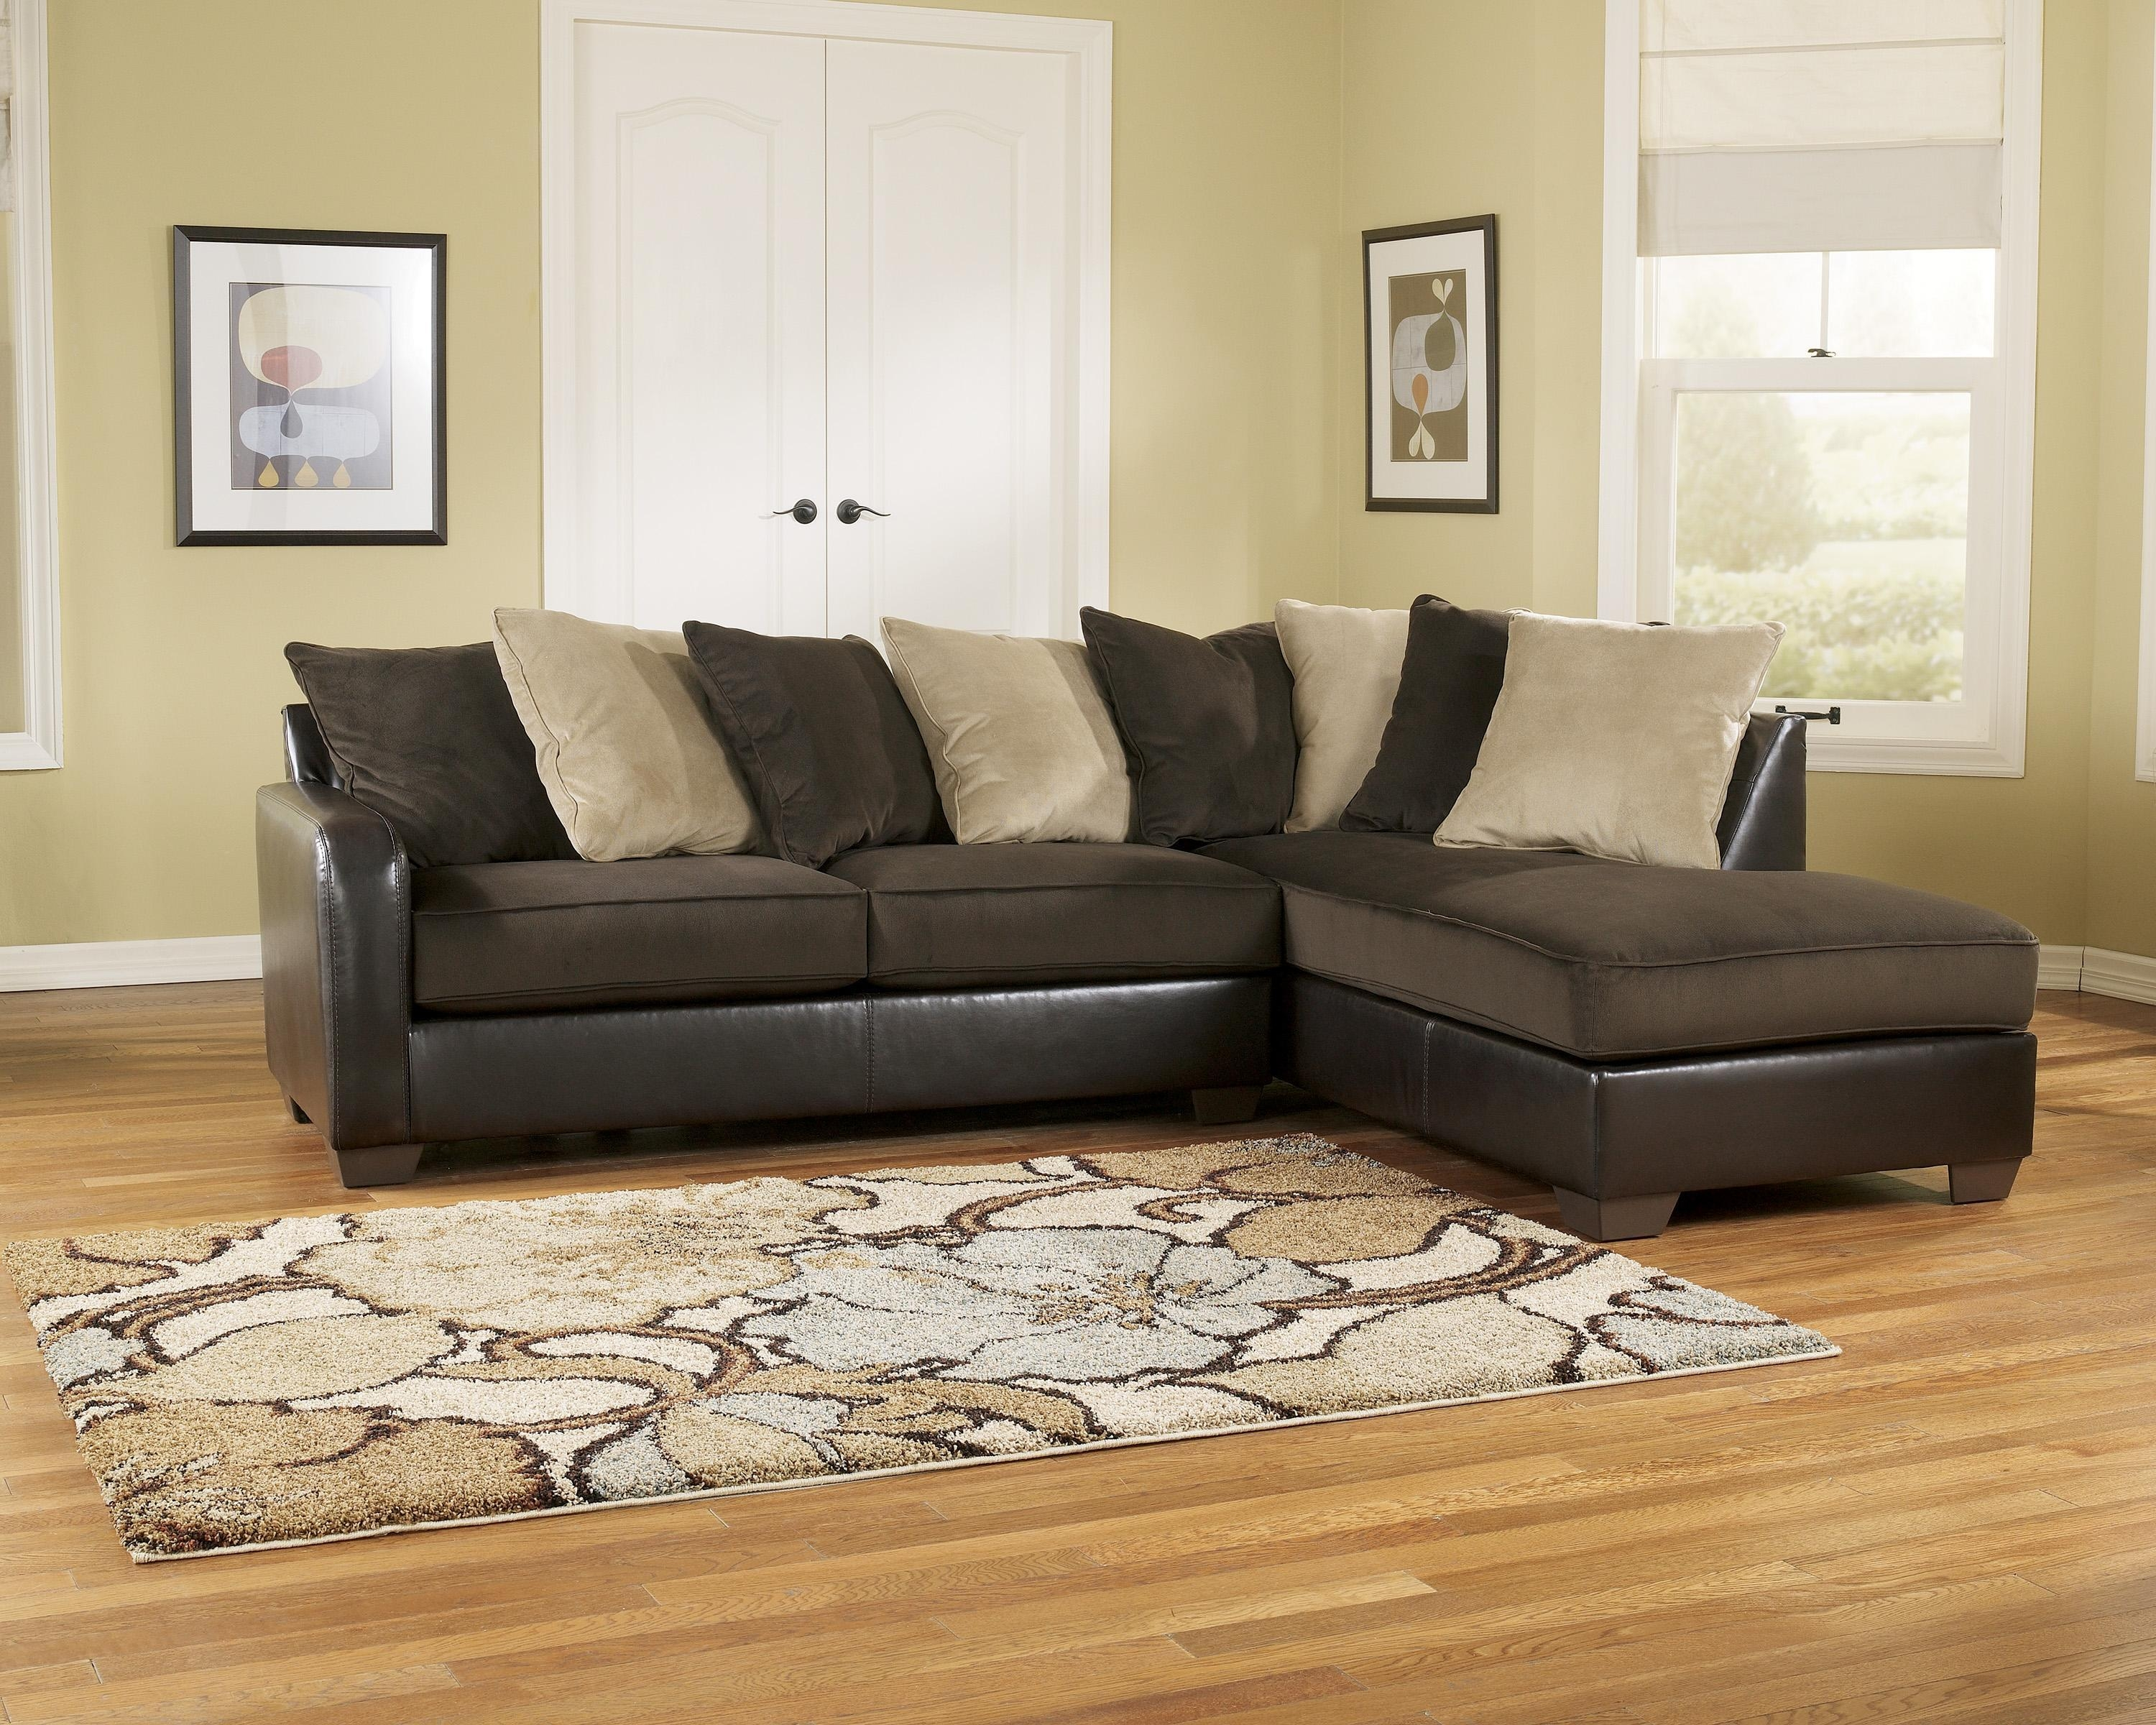 Sectional Sofas Ashley Furniture | Furniture Design Ideas Inside Ashley Furniture Leather Sectional Sofas (View 2 of 20)